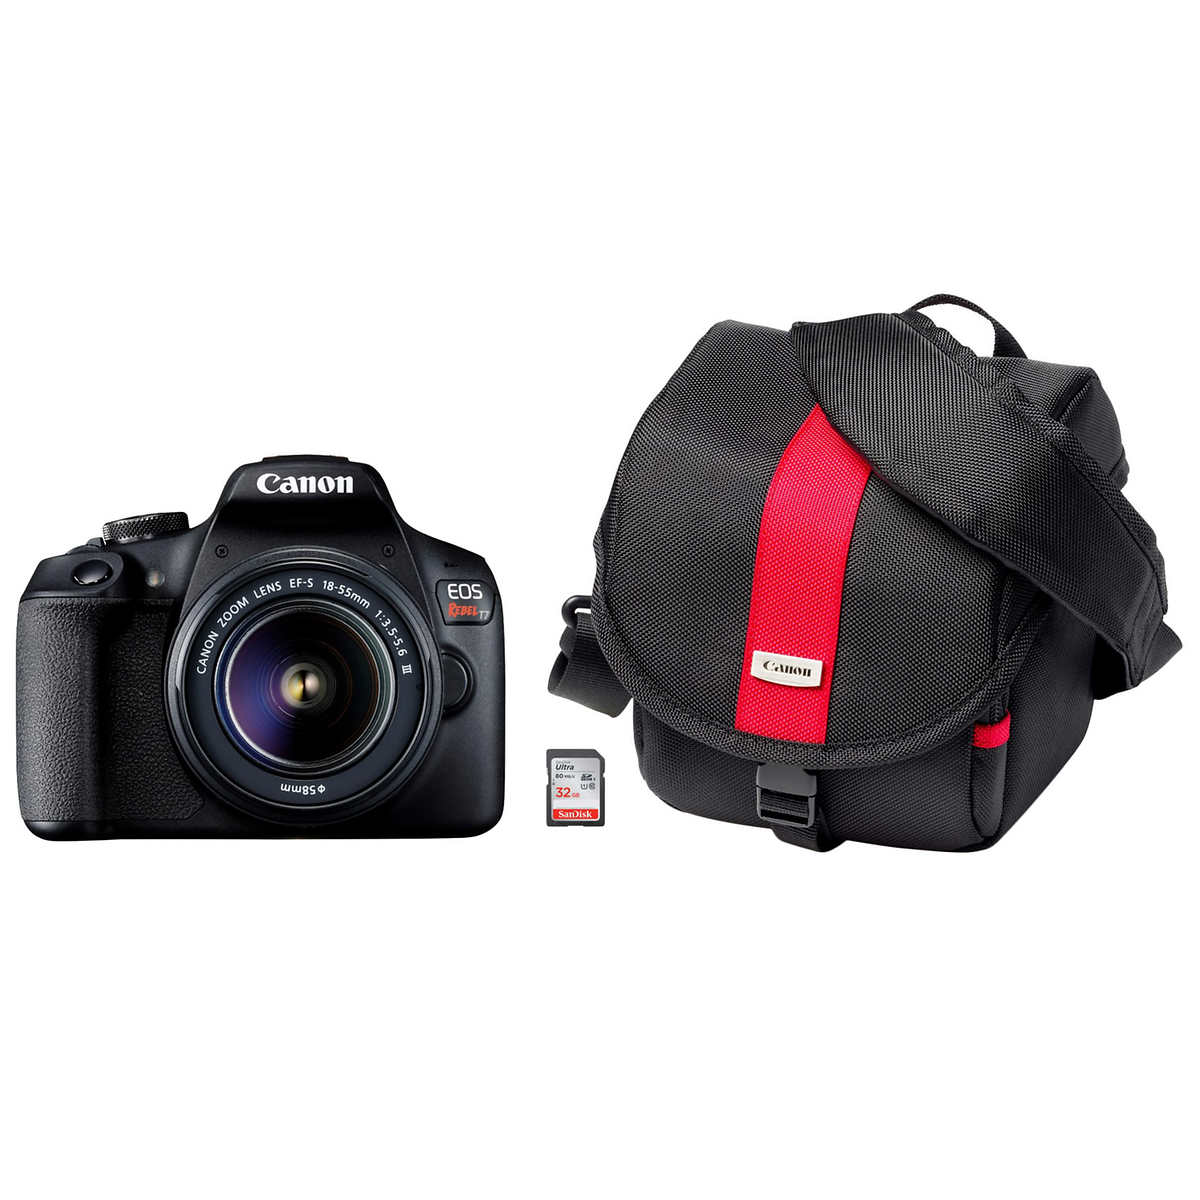 Canon Eos Rebel T7 24 1 Mp Digital Slr Camera Built In Wi Fi And Nfc Includes Ef S 18 55 Lens Bag And 32 Gb Memory Card